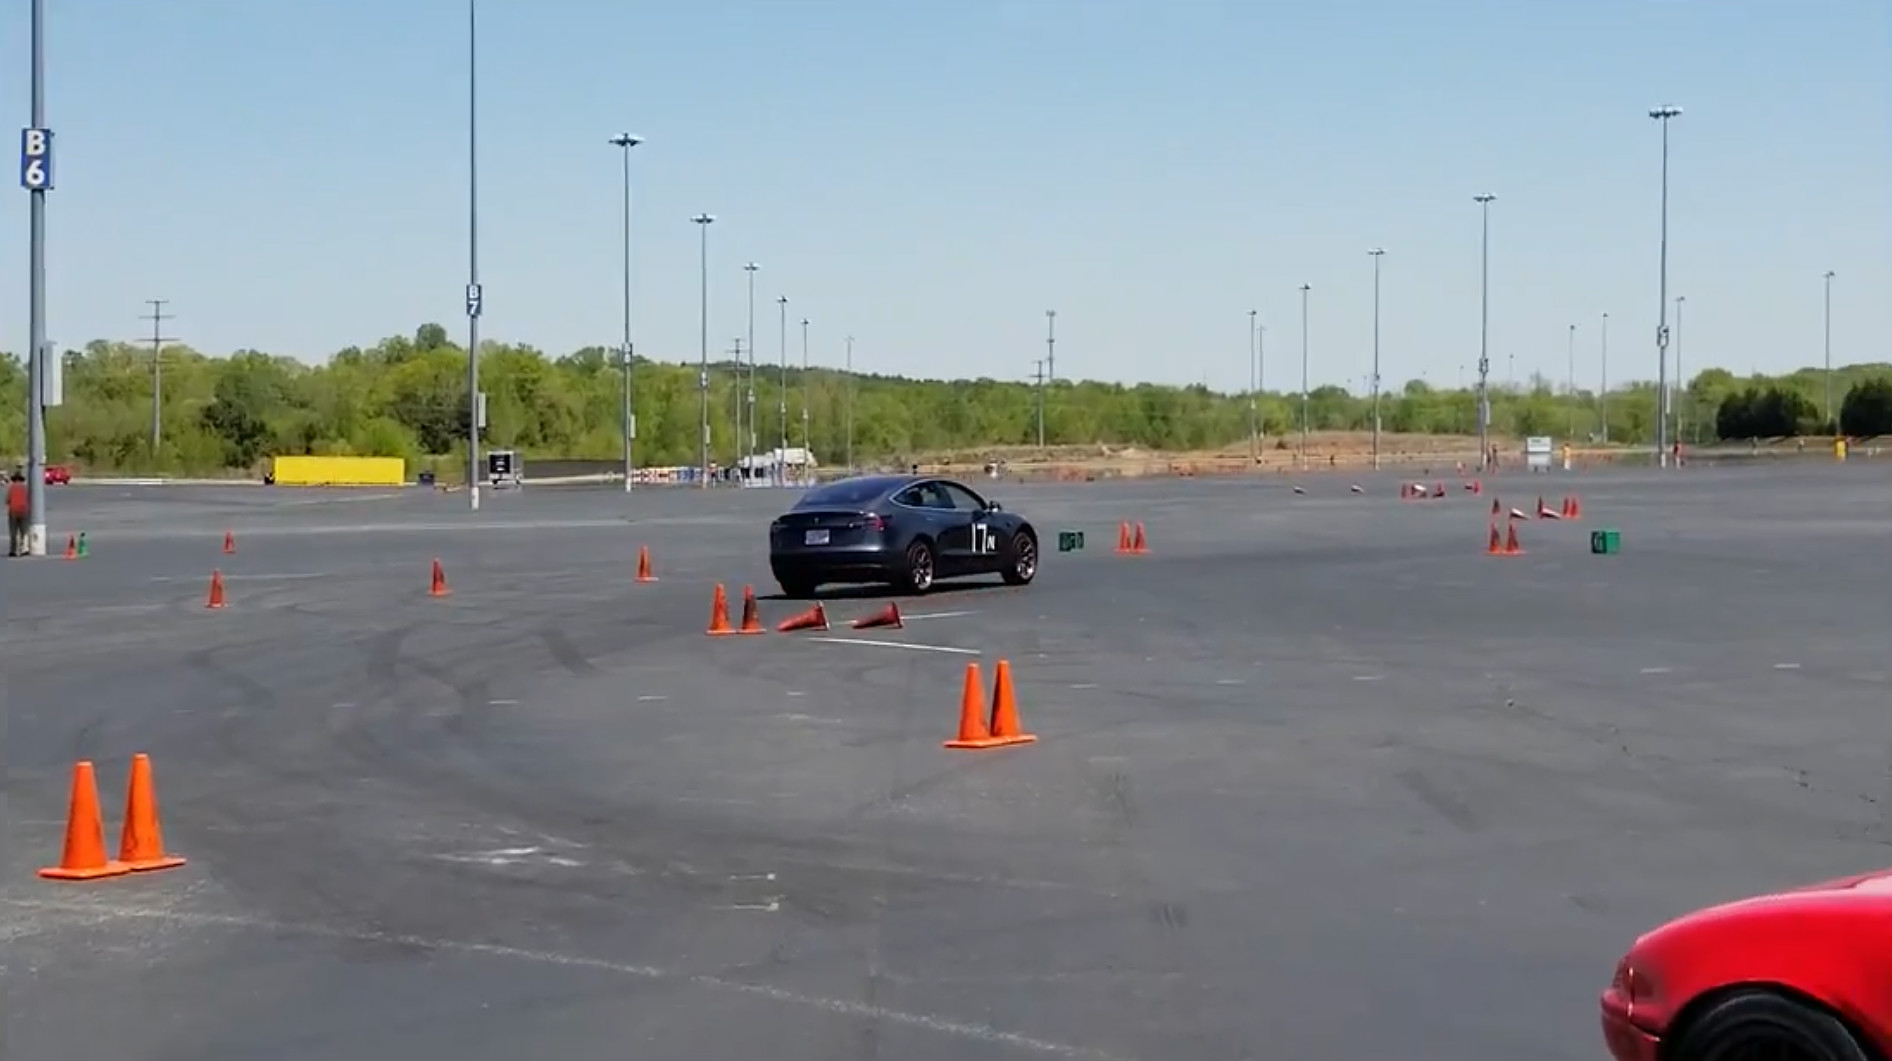 Model 3 autocross run 3 [Credit: Chestley Couch/YouTube]